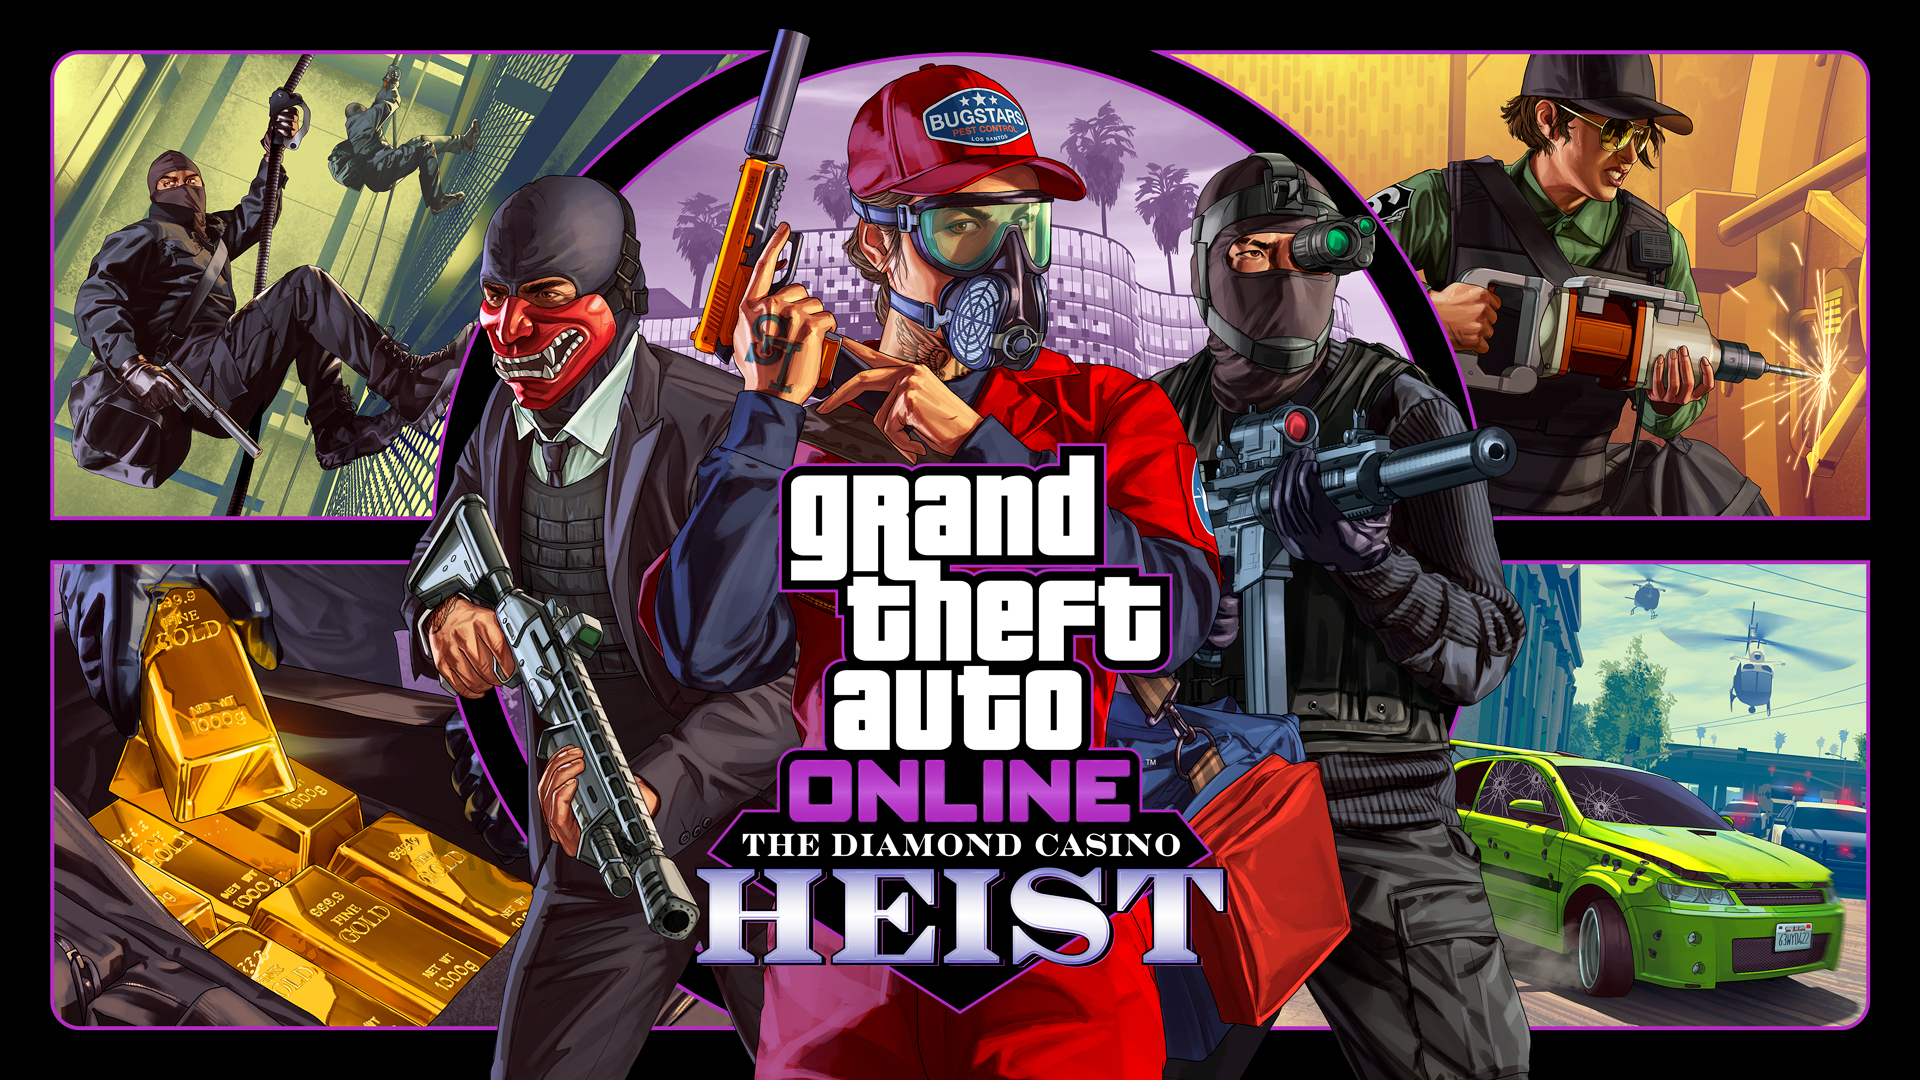 Grand Theft Auto Online Will Launch The Diamond Casino Heist Next Week